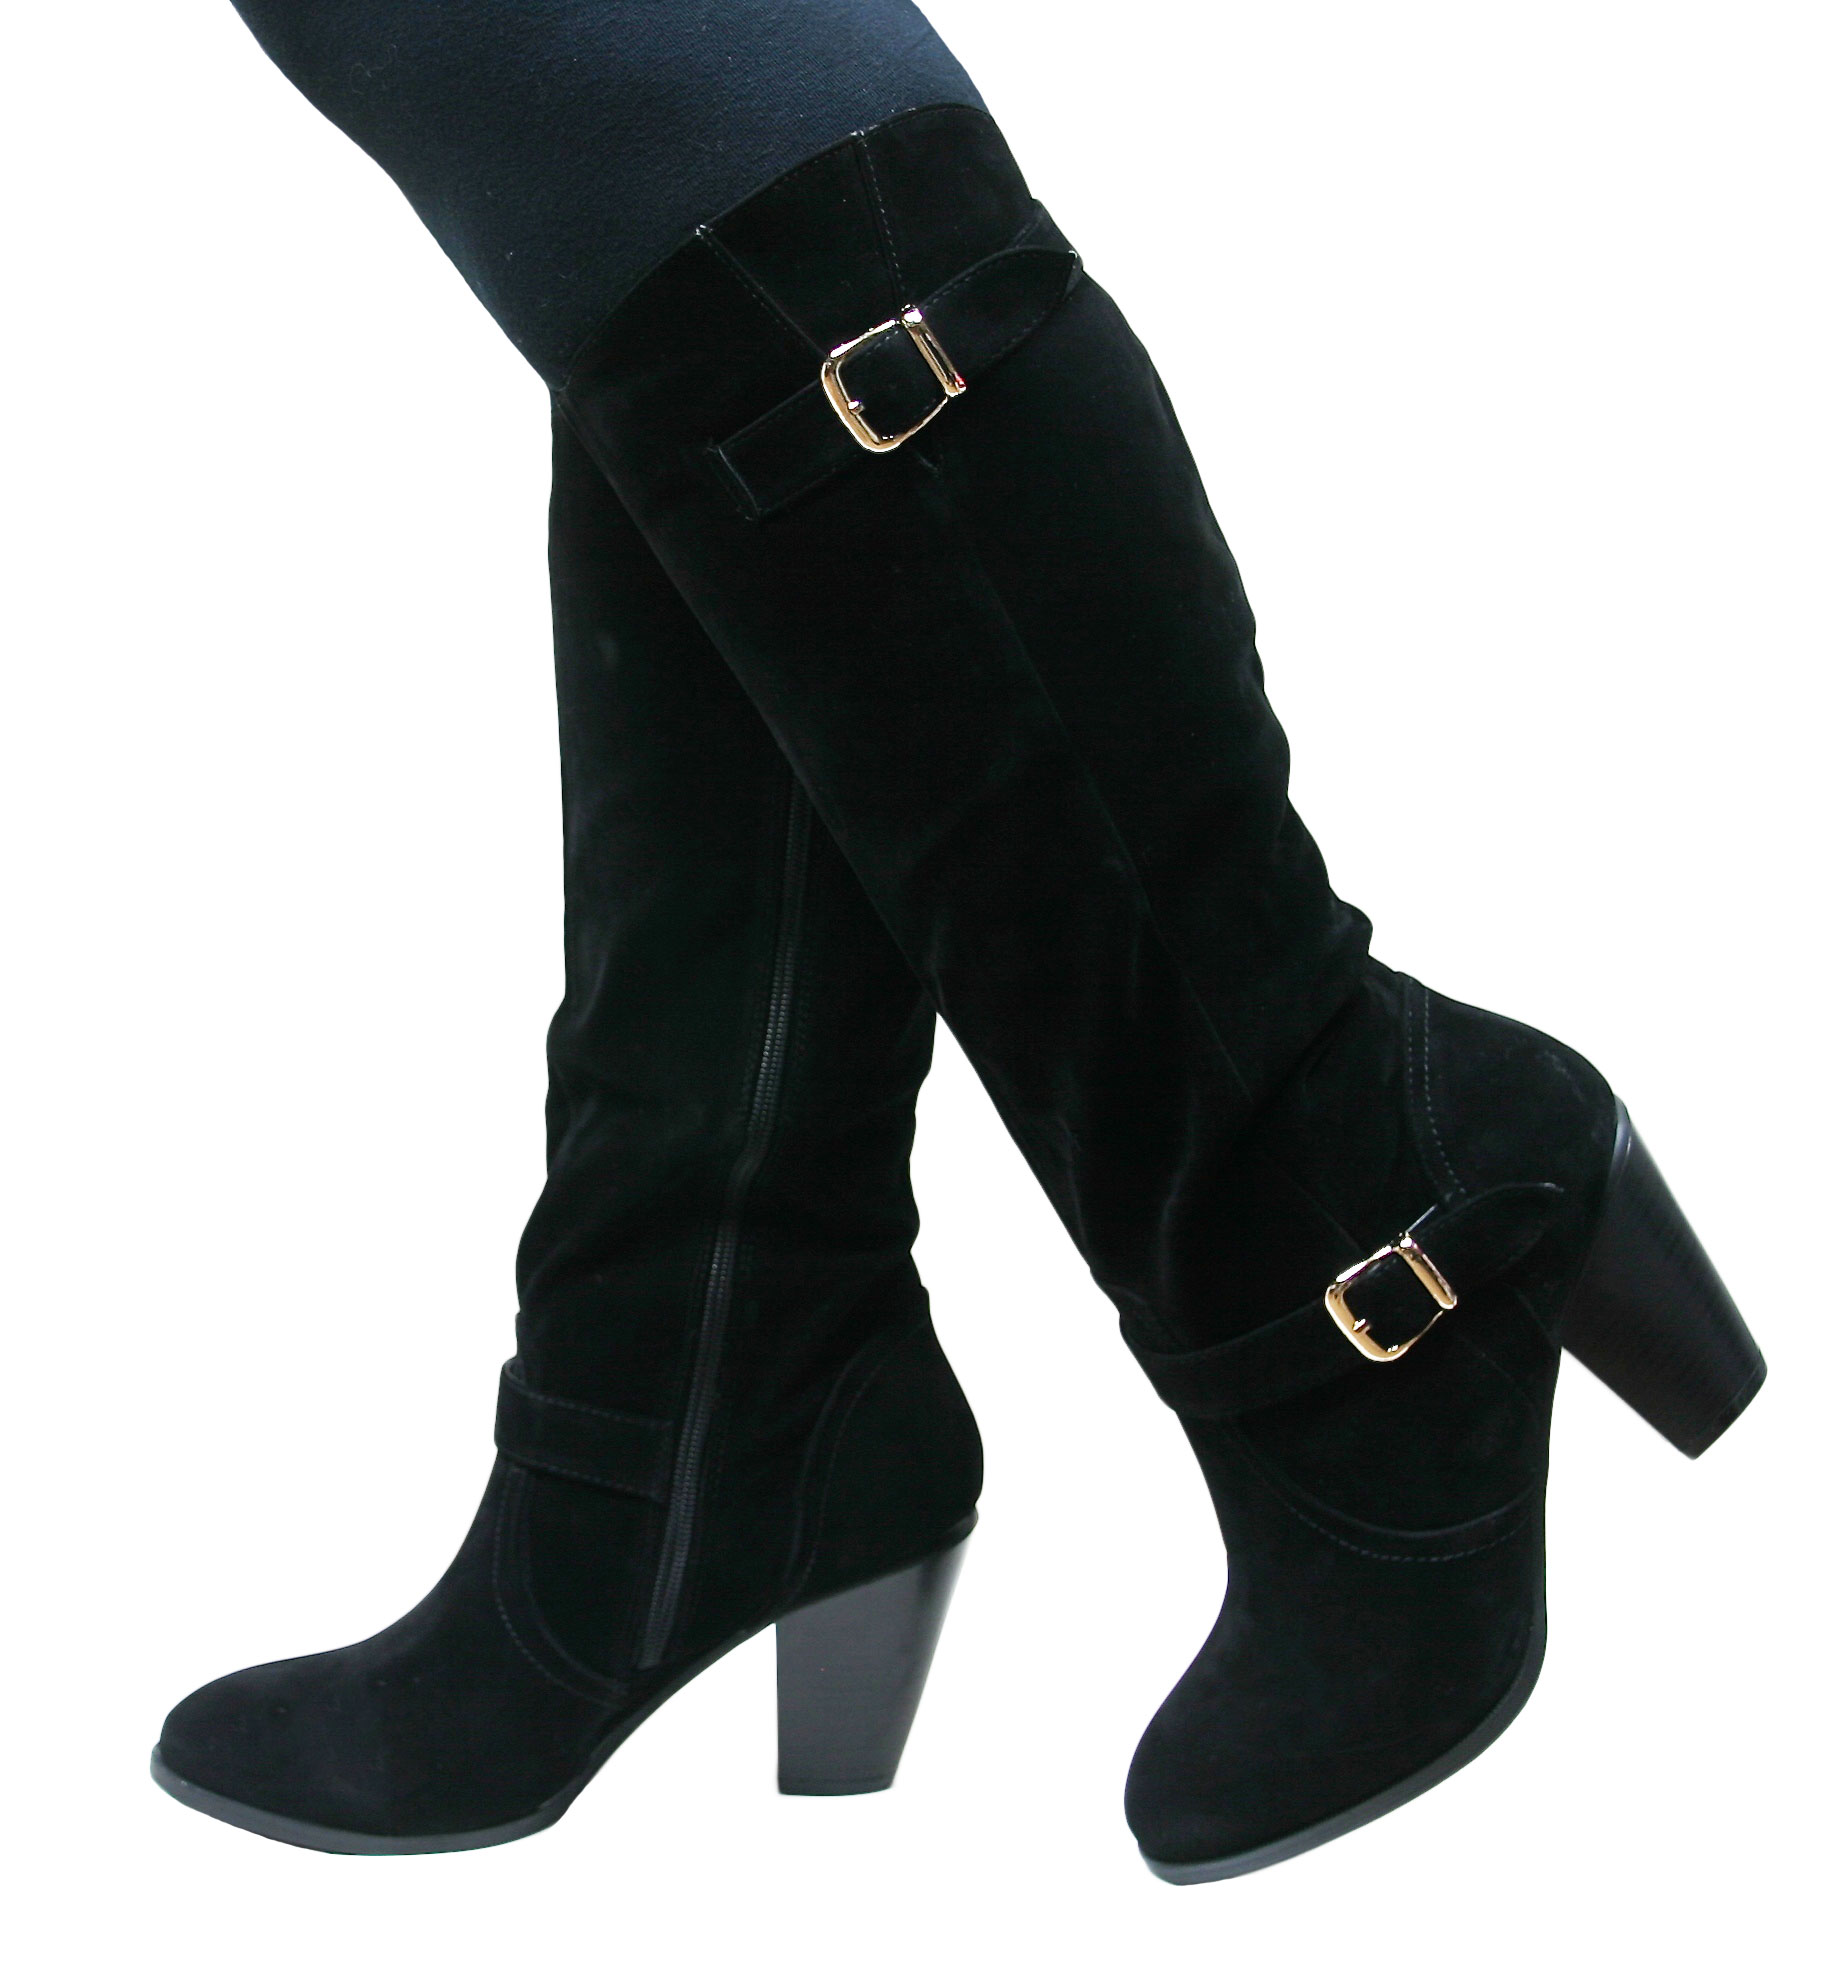 Womens Ladies Knee High Wide-Calf Buckle Detail Zip Up Boots | eBay